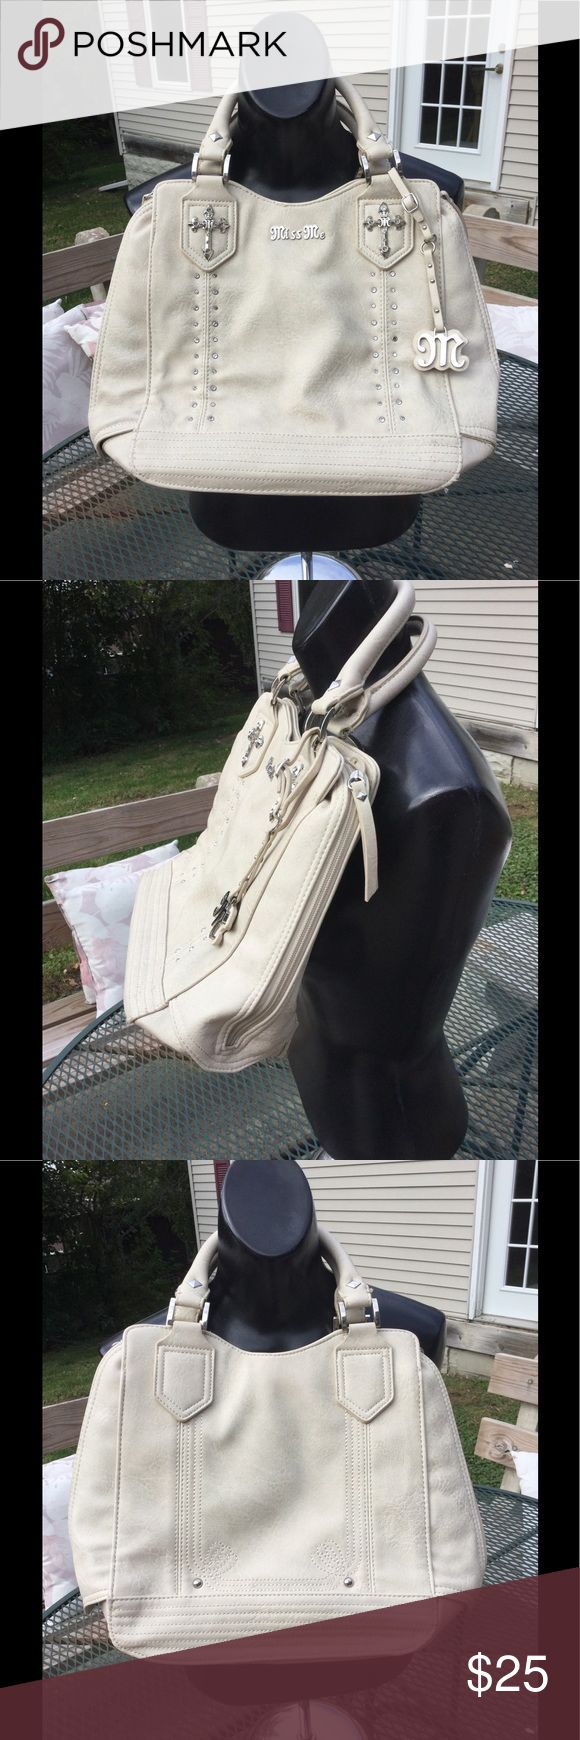 Miss Me purse Guc, 5th picture shows 1 stud missing. Cream colored Leather. Could use a leather cleaner, but it's not bad! Good sized and super cute! Inside very clean! Comes with free Miss Me very used wallet! Miss Me Bags Shoulder Bags